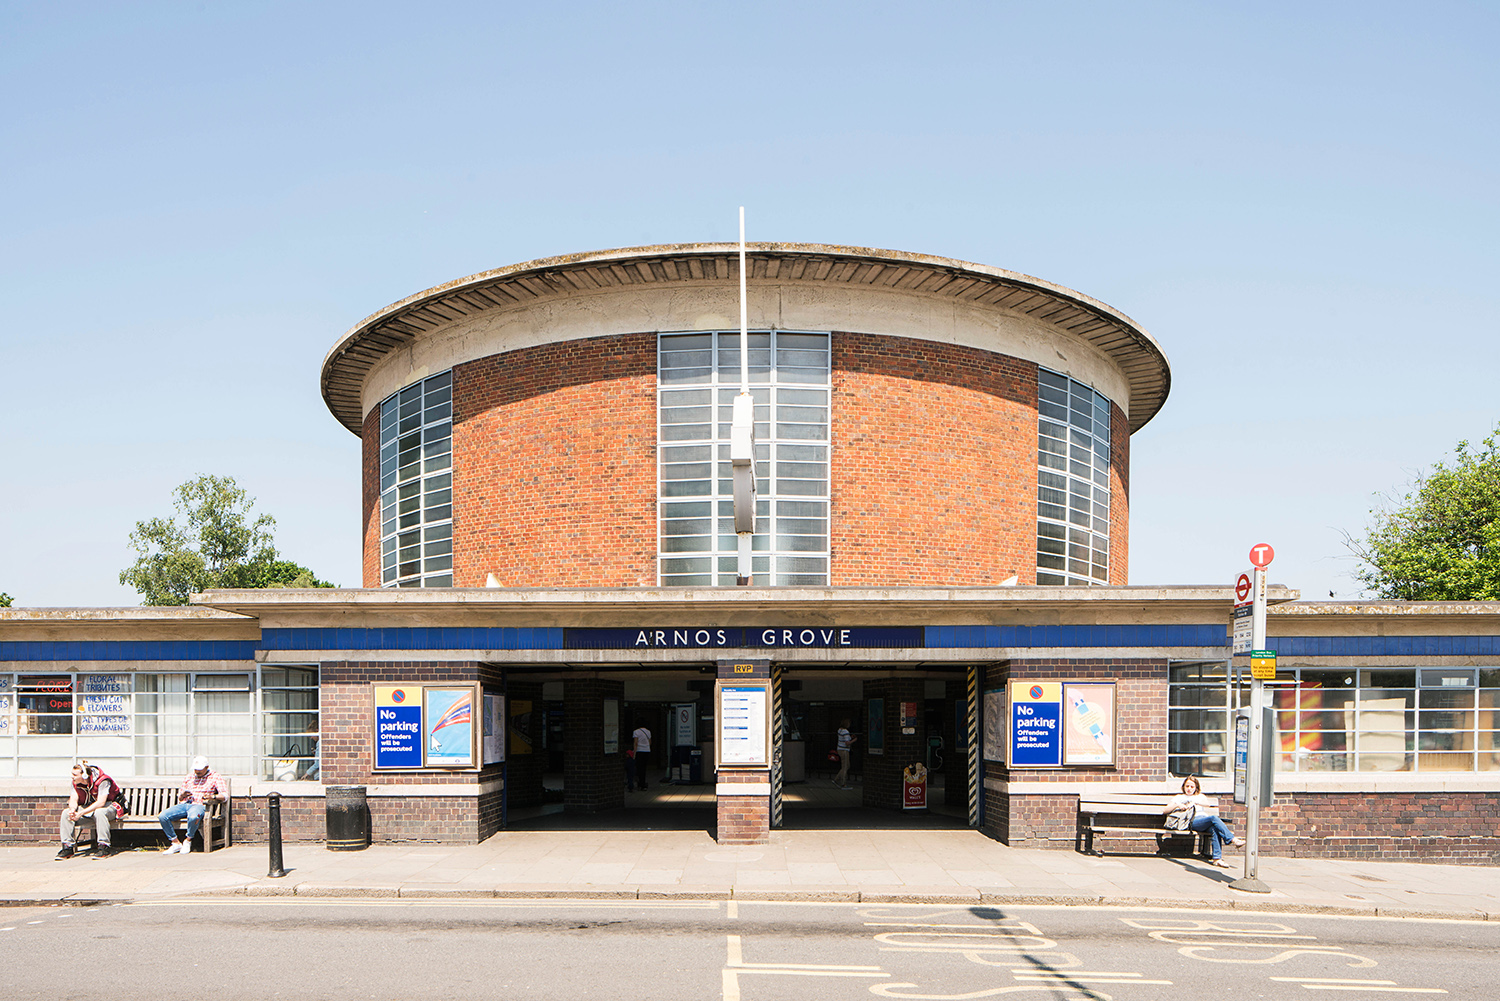 ARNOS GROVE / PICCADILLY LINE / ARCHITECT: CHARLES HOLDEN